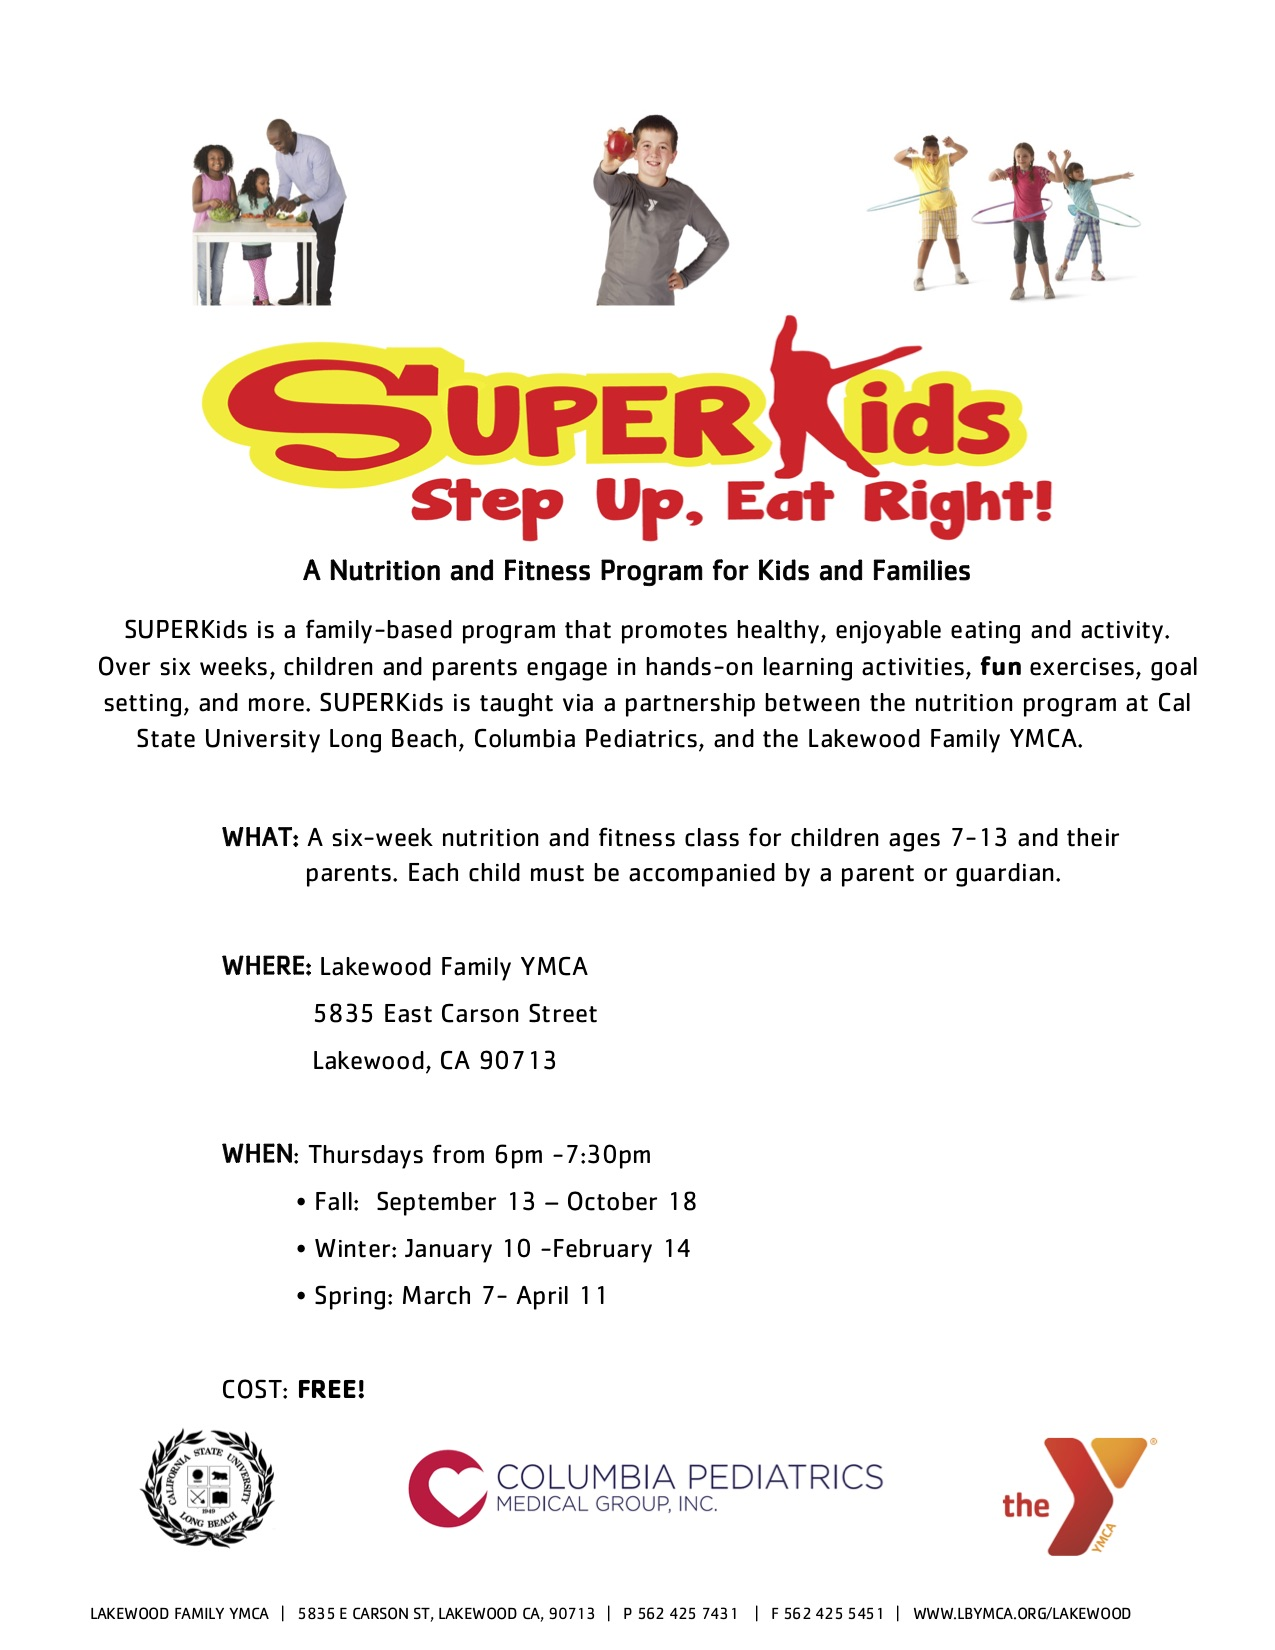 SUPER Kids is BACK!!! - Columbia Pediatrics Medical Group, Inc ...